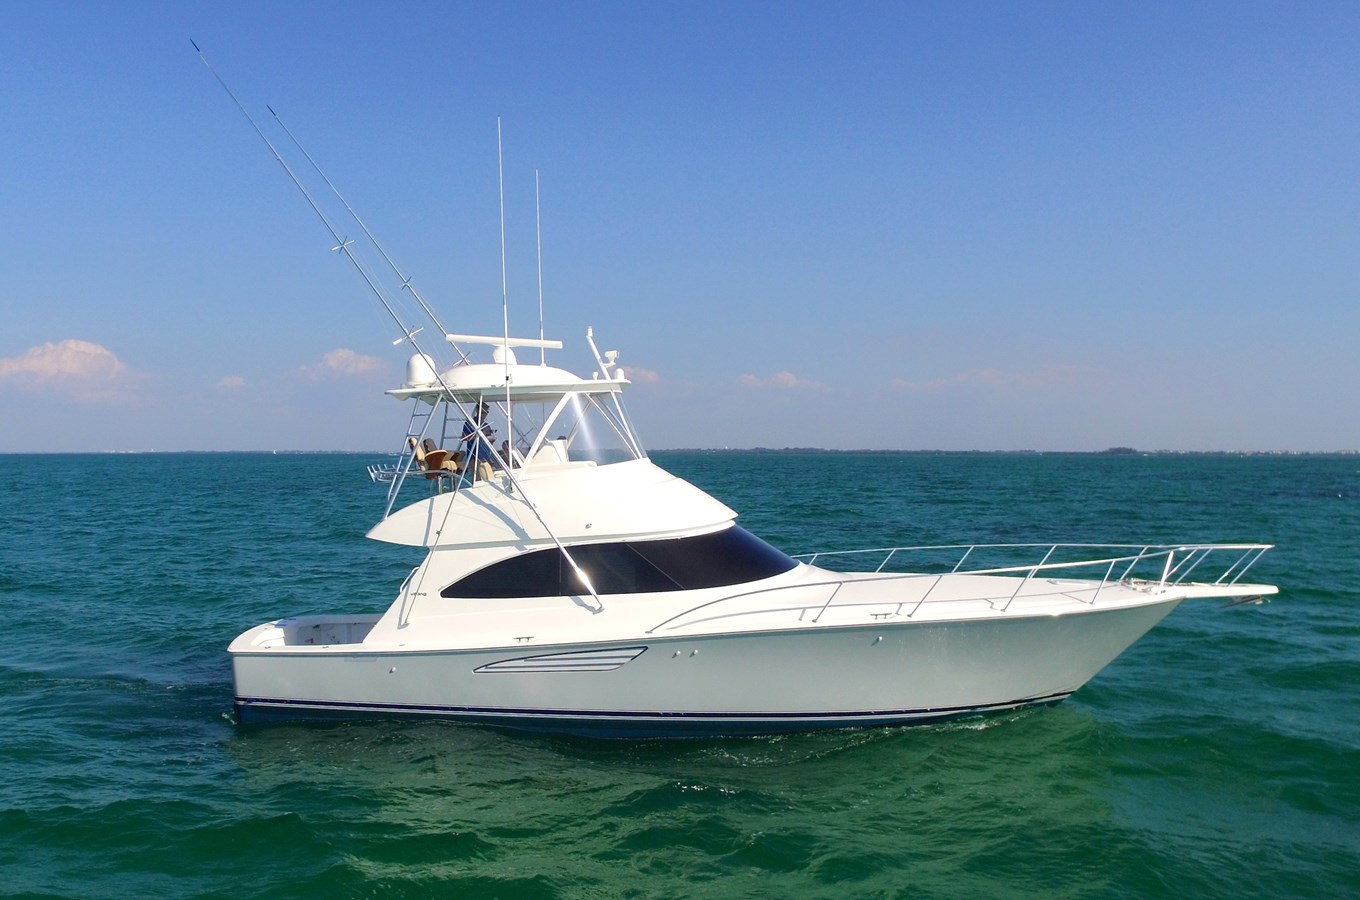 2019 VIKING 48 Convertible (VK48-223) For Sale